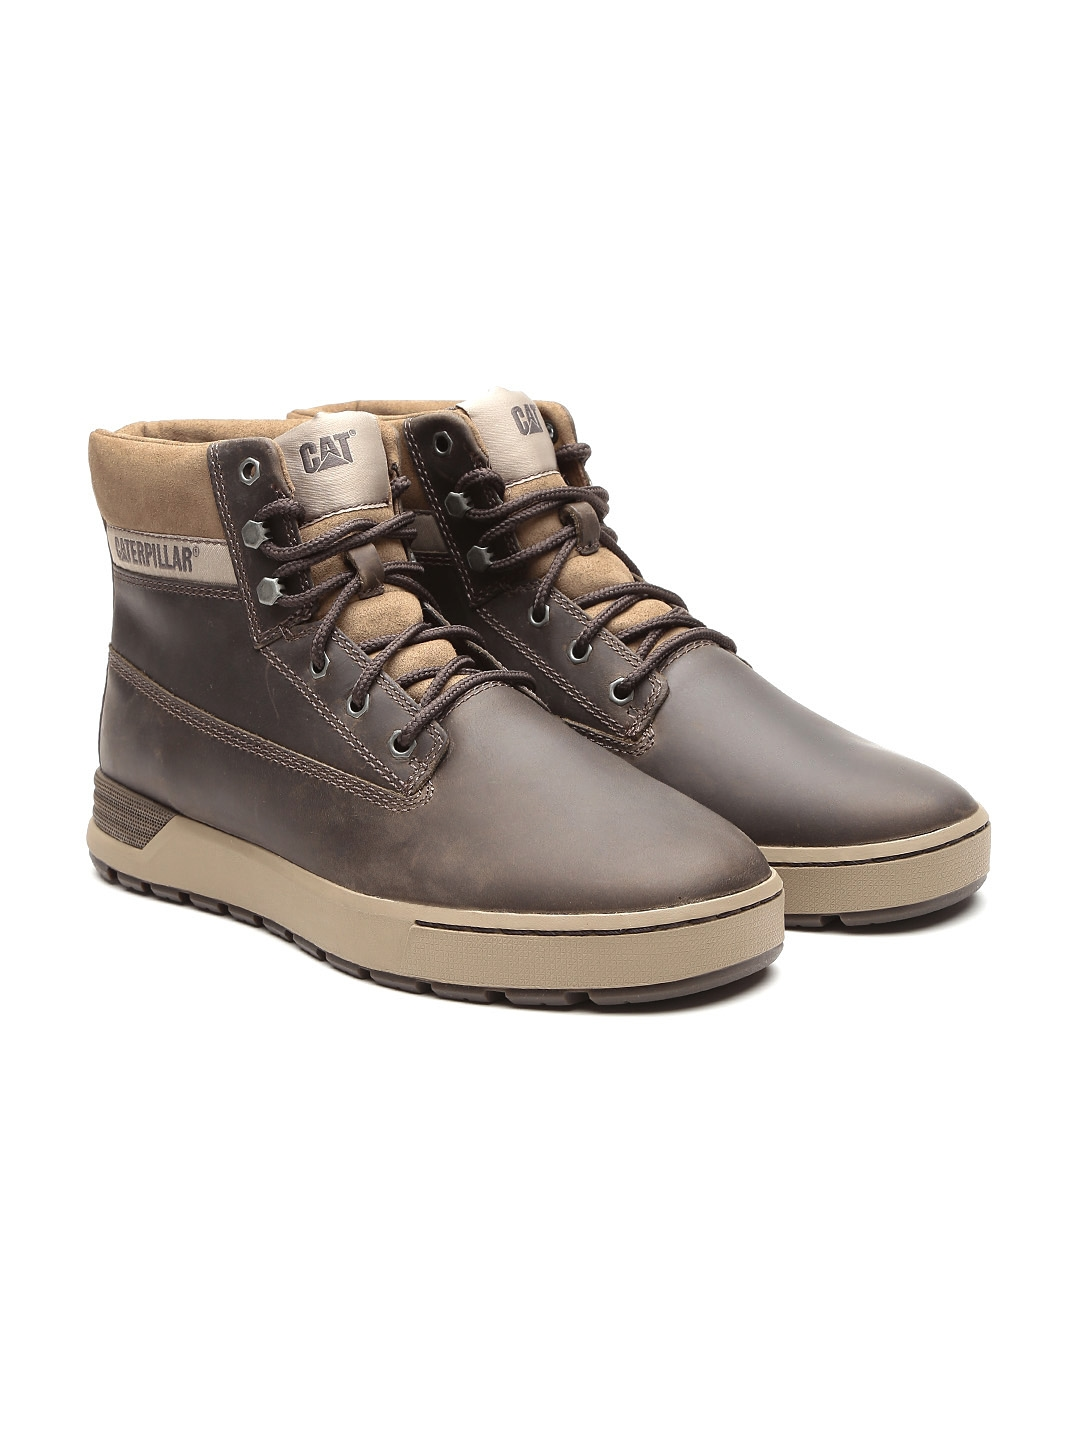 0ae87115f88 Buy CAT Men Olive Brown High Top Leather Flat Boots - Casual Shoes ...